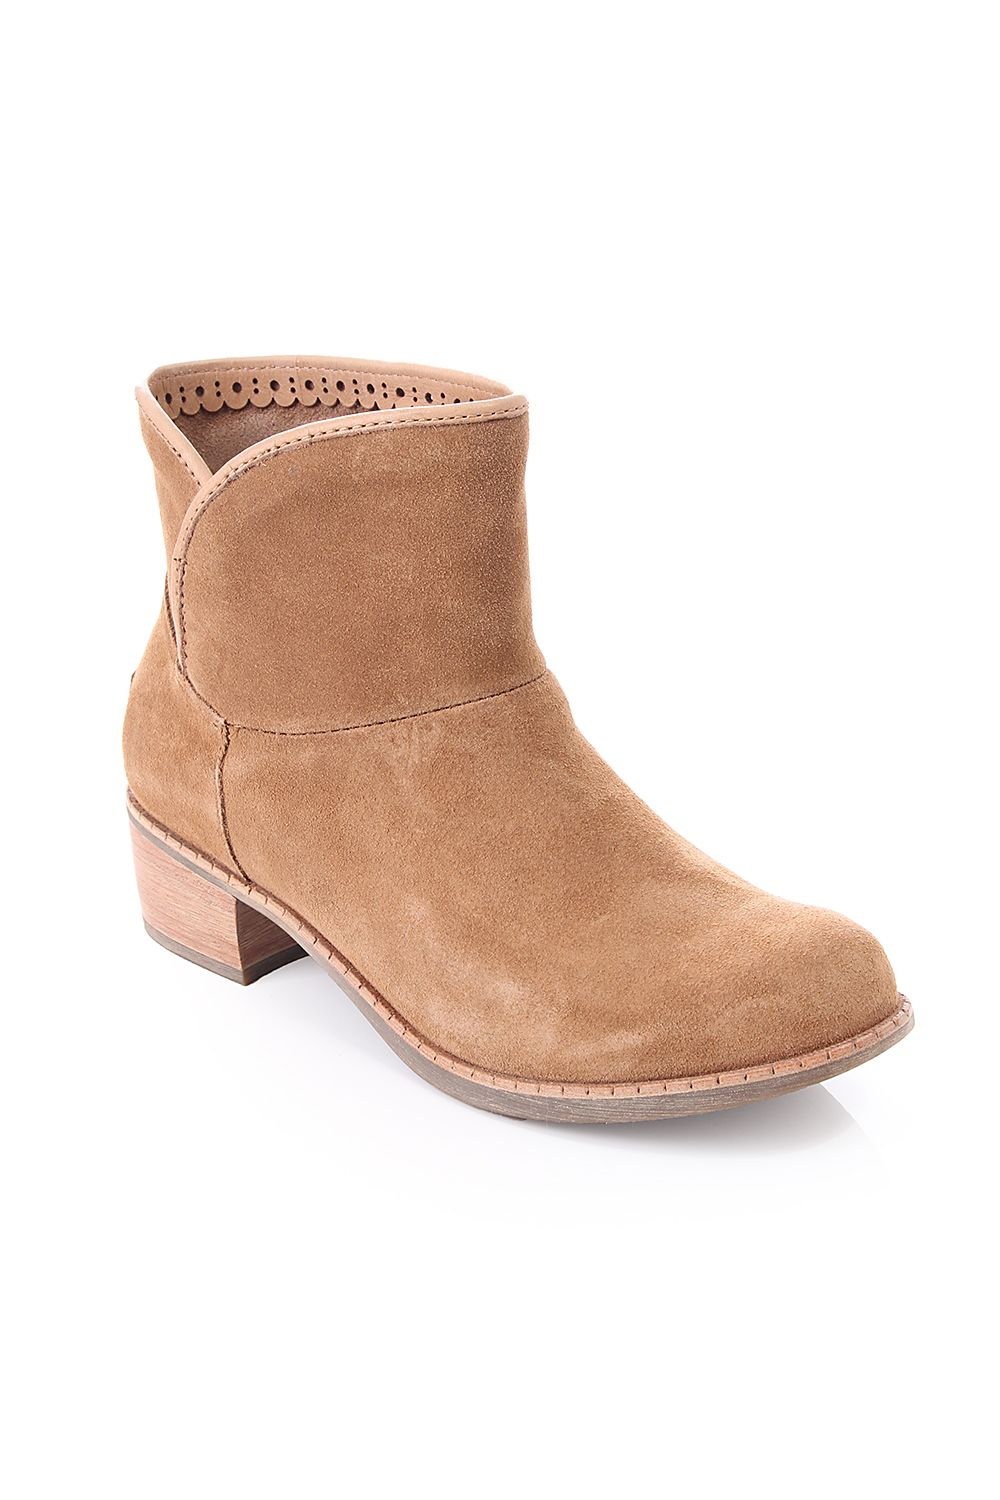 936010968ac Pin by Blueberries Blackpool on UGG Australia '13 | Shoe boots ...